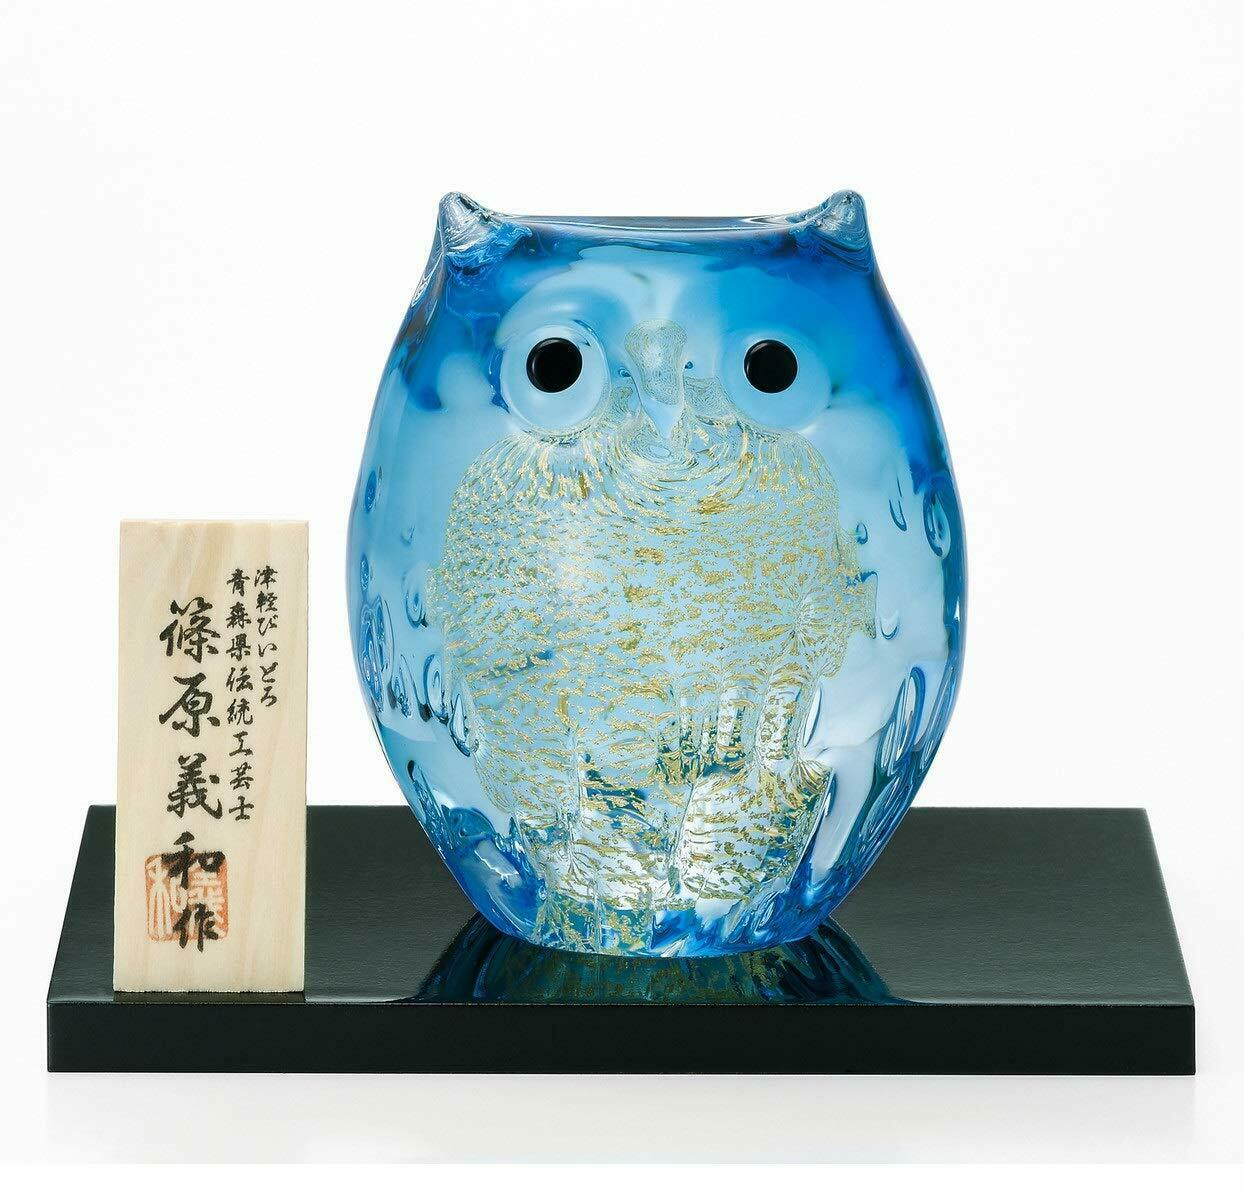 Aderia Tsugaru Vidro verrerie Ornement Parent Hibou Bleu Clair Or F-62989 Japon